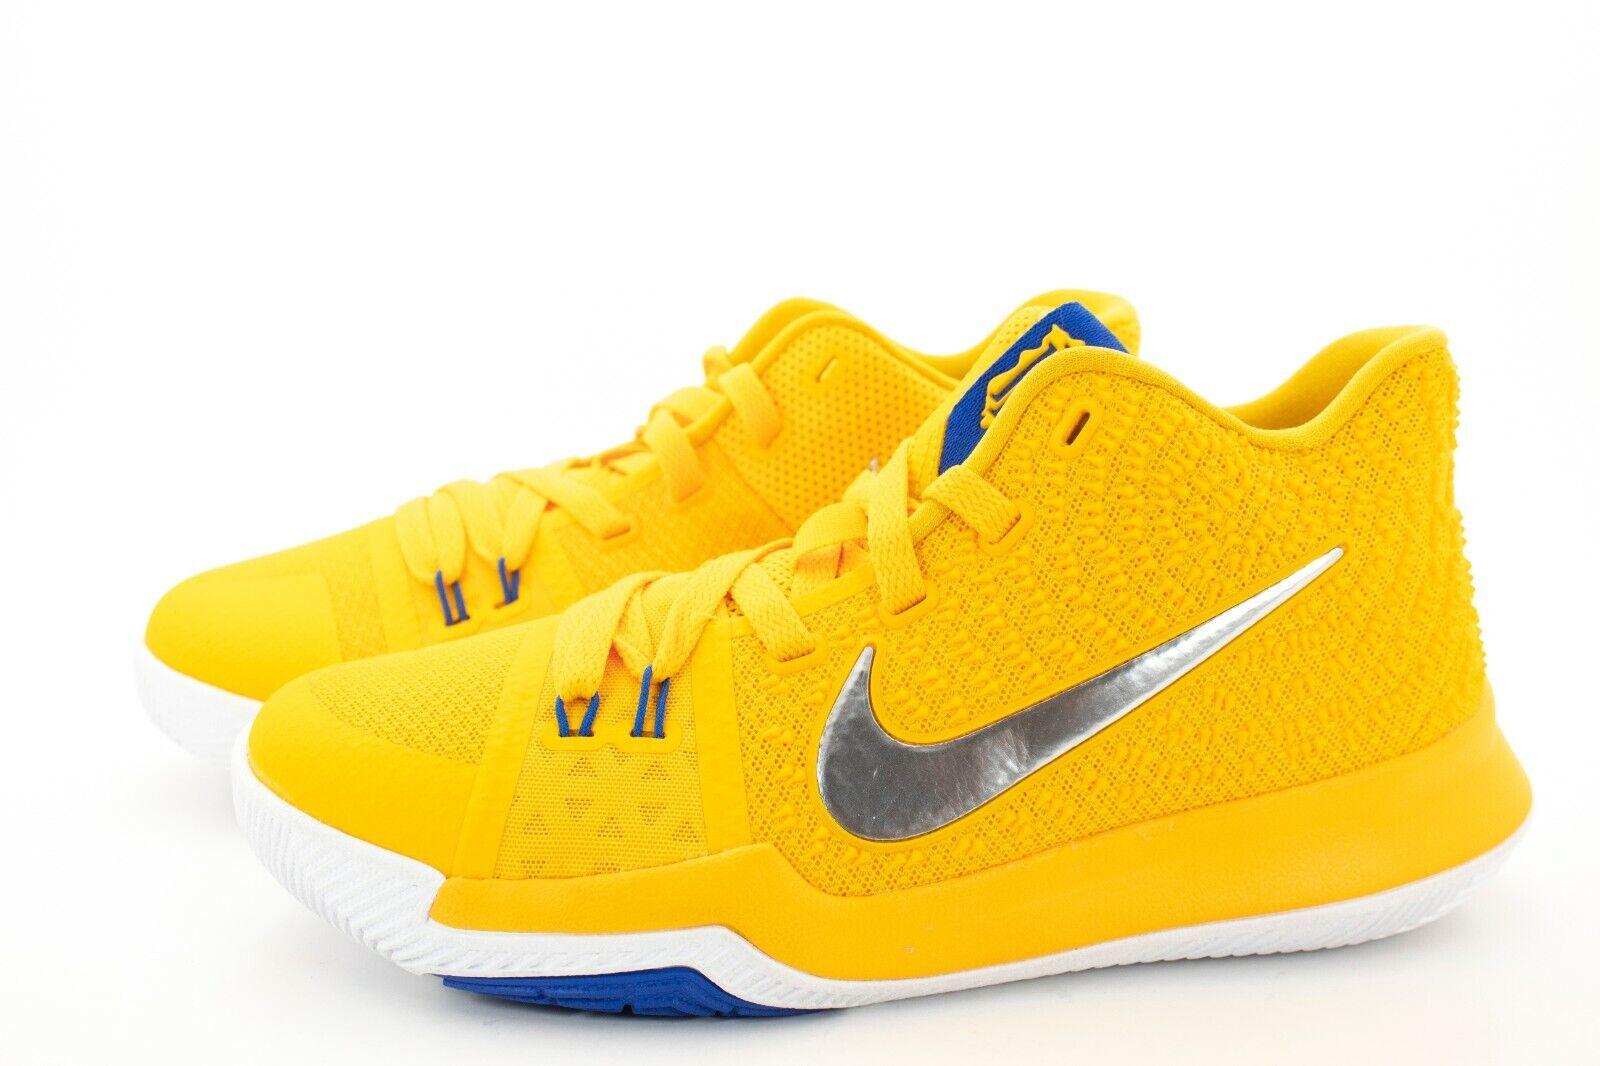 Nike Kyrie 3 Mac and Cheese Yellow Basketball Shoes 859466 791 Youth Size 6.5Y